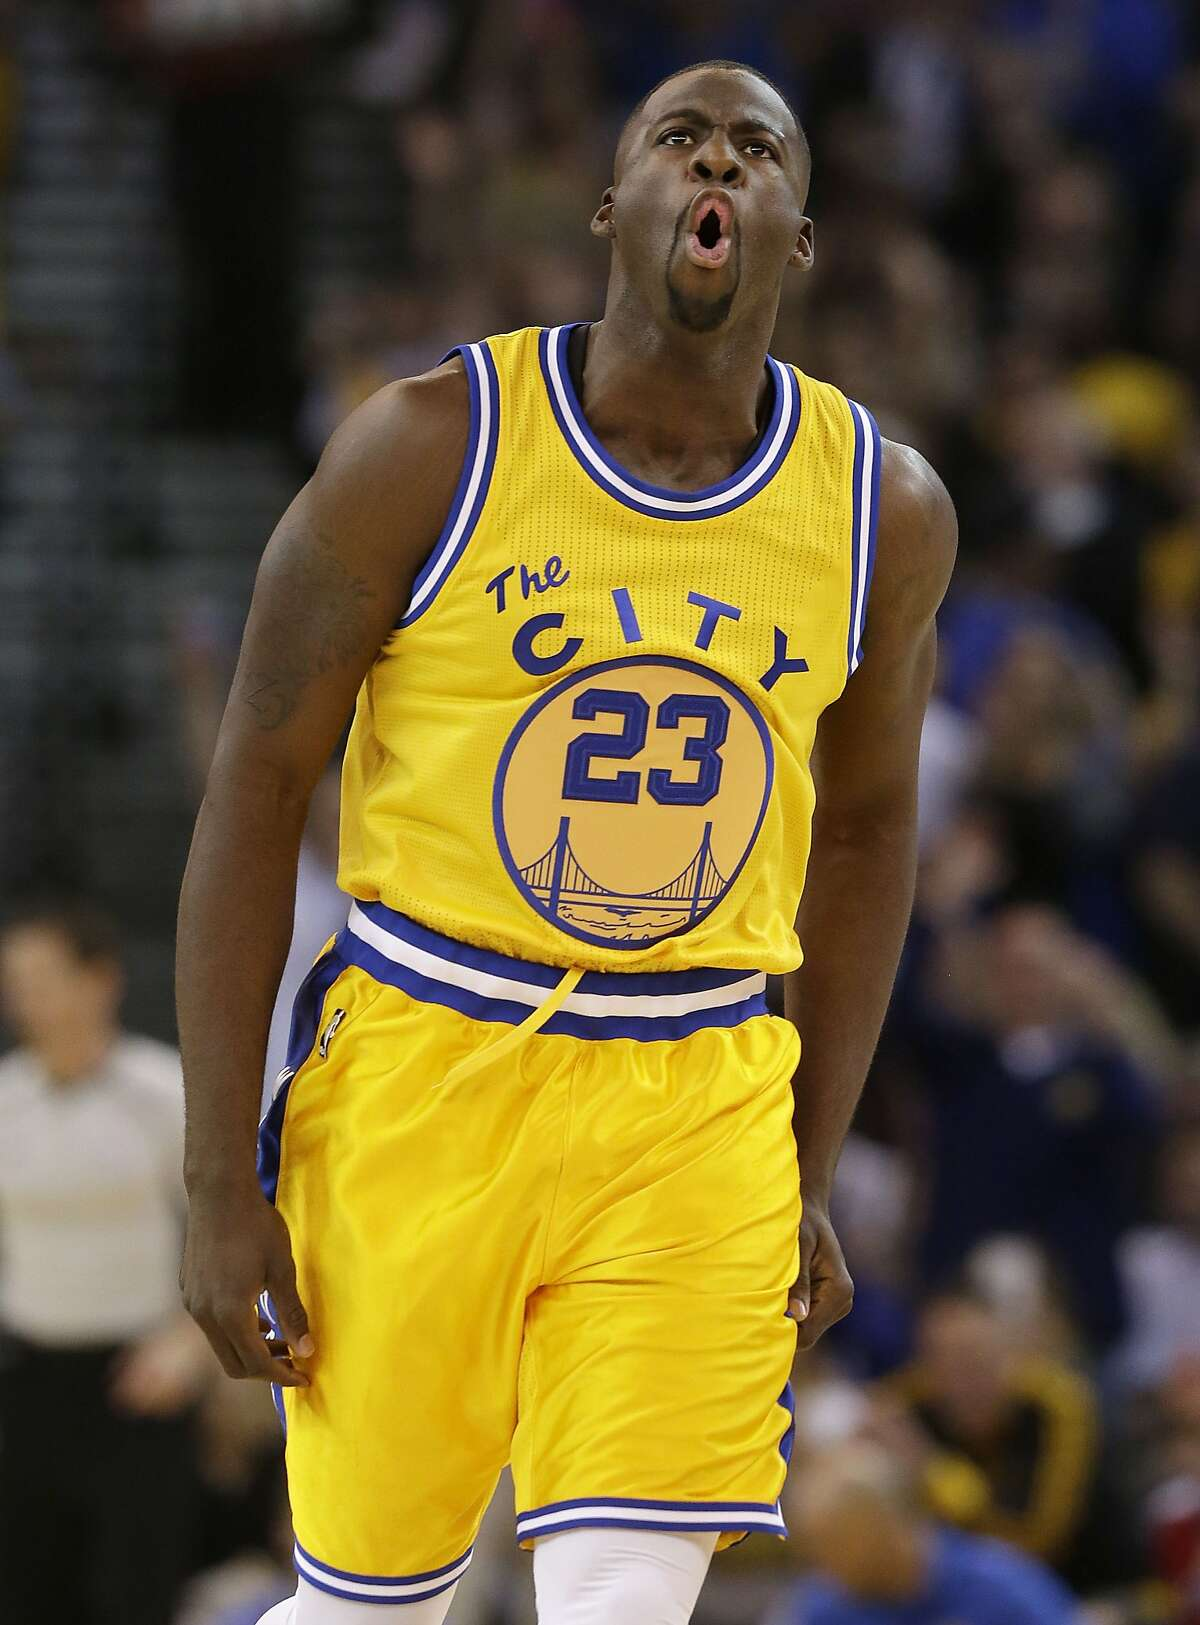 Golden State Warriors forward Draymond Green reacts after making a 3-point basket during the first half of an NBA basketball game against the Los Angeles Lakers in Oakland, Calif., Tuesday, Nov. 24, 2015. (AP Photo/Jeff Chiu)